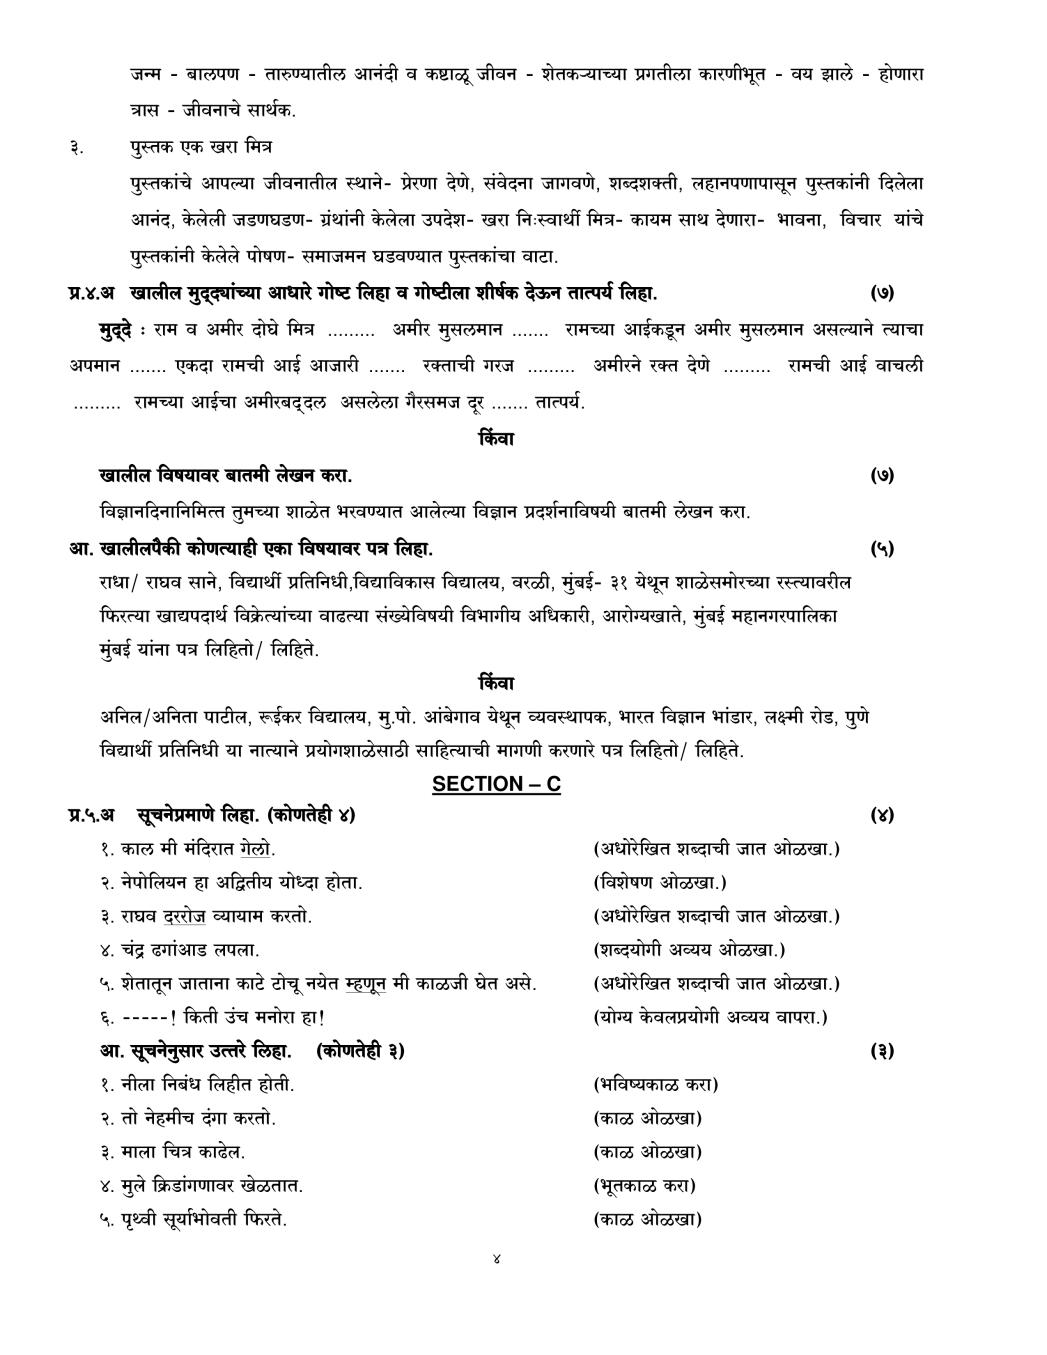 Cbse Sample Papers For Class 10 Marathi